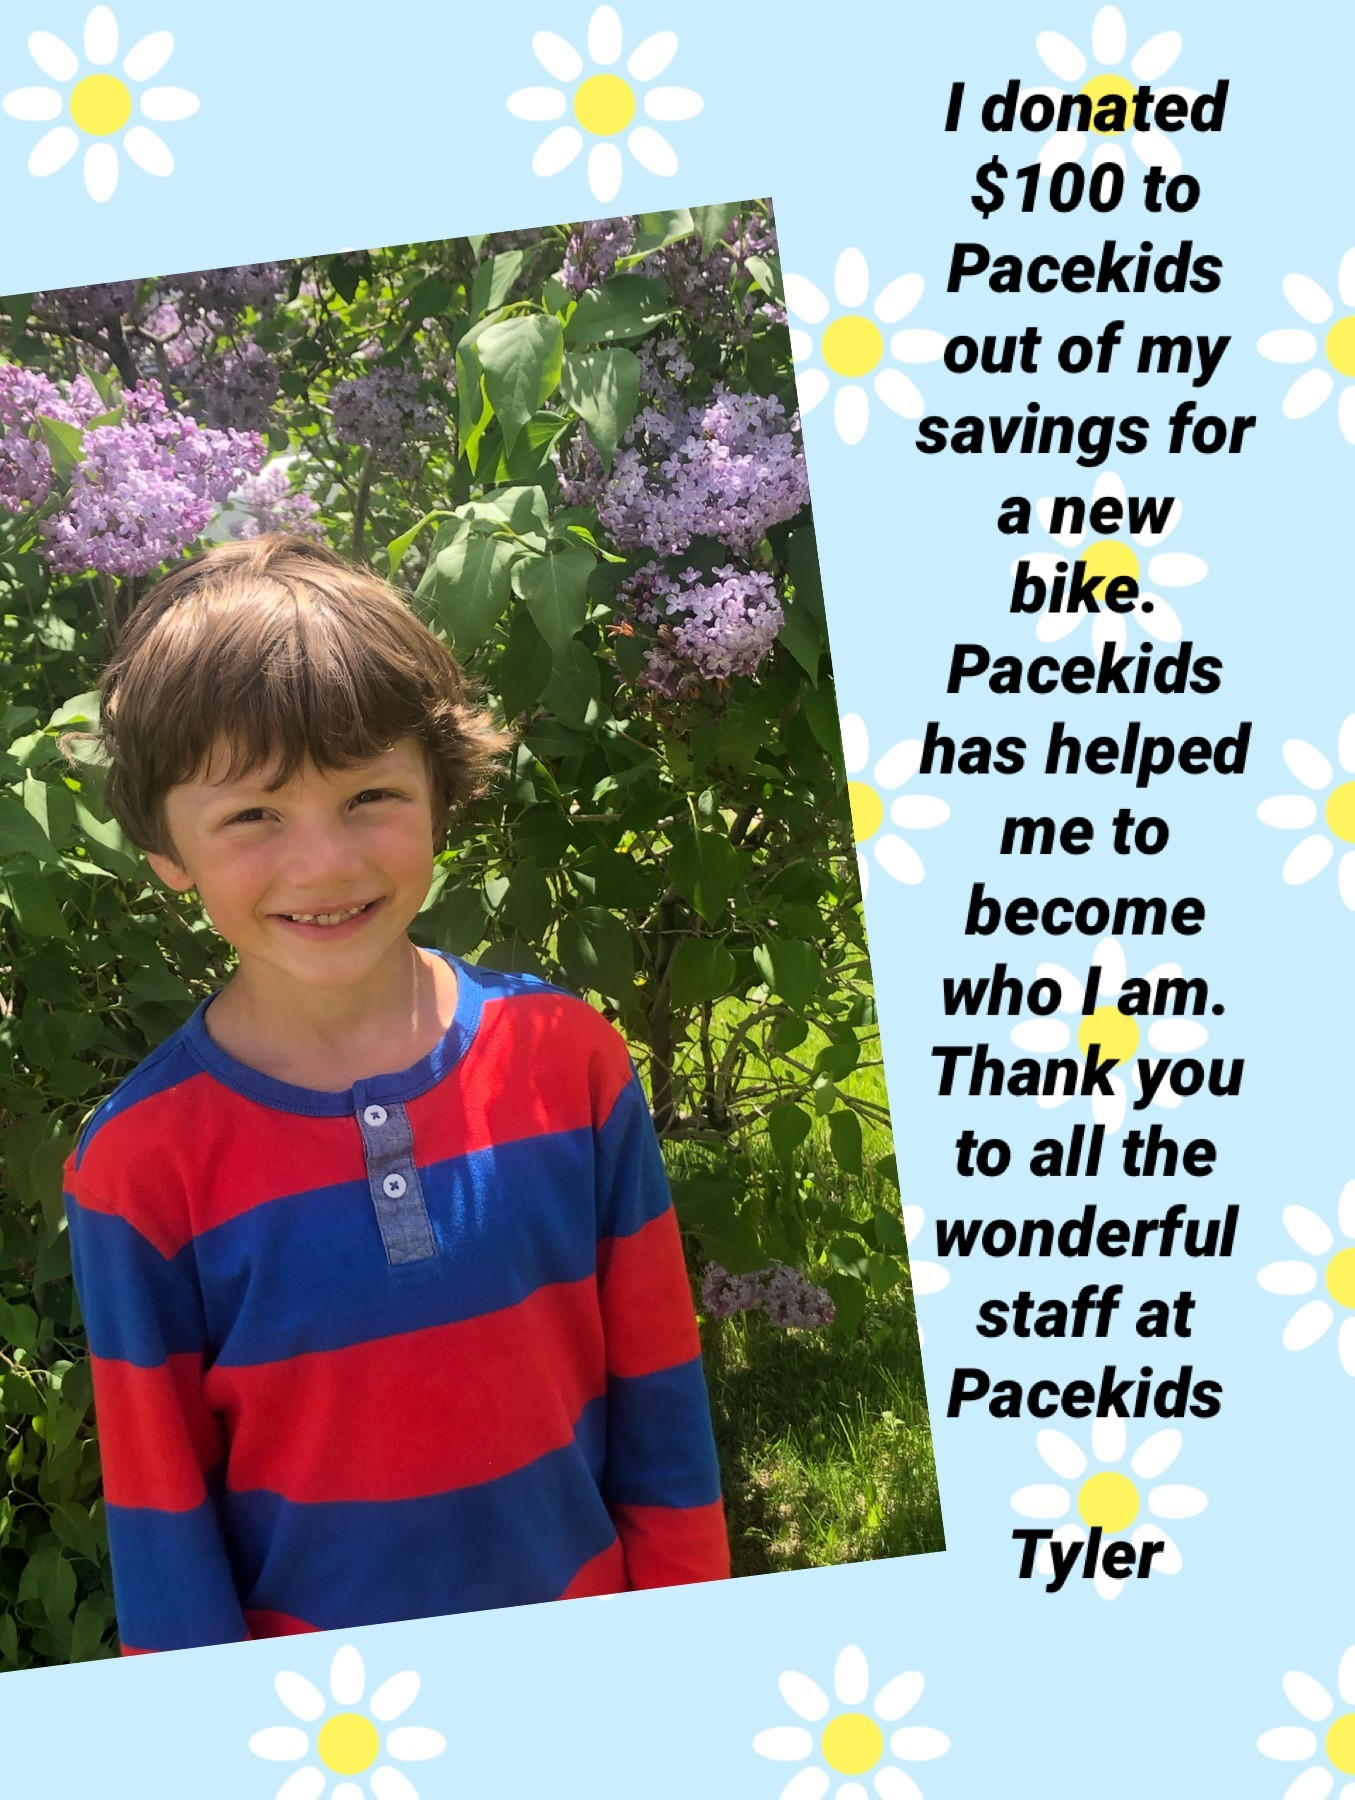 Tyler, Pacekids' Alumni from Special needs School